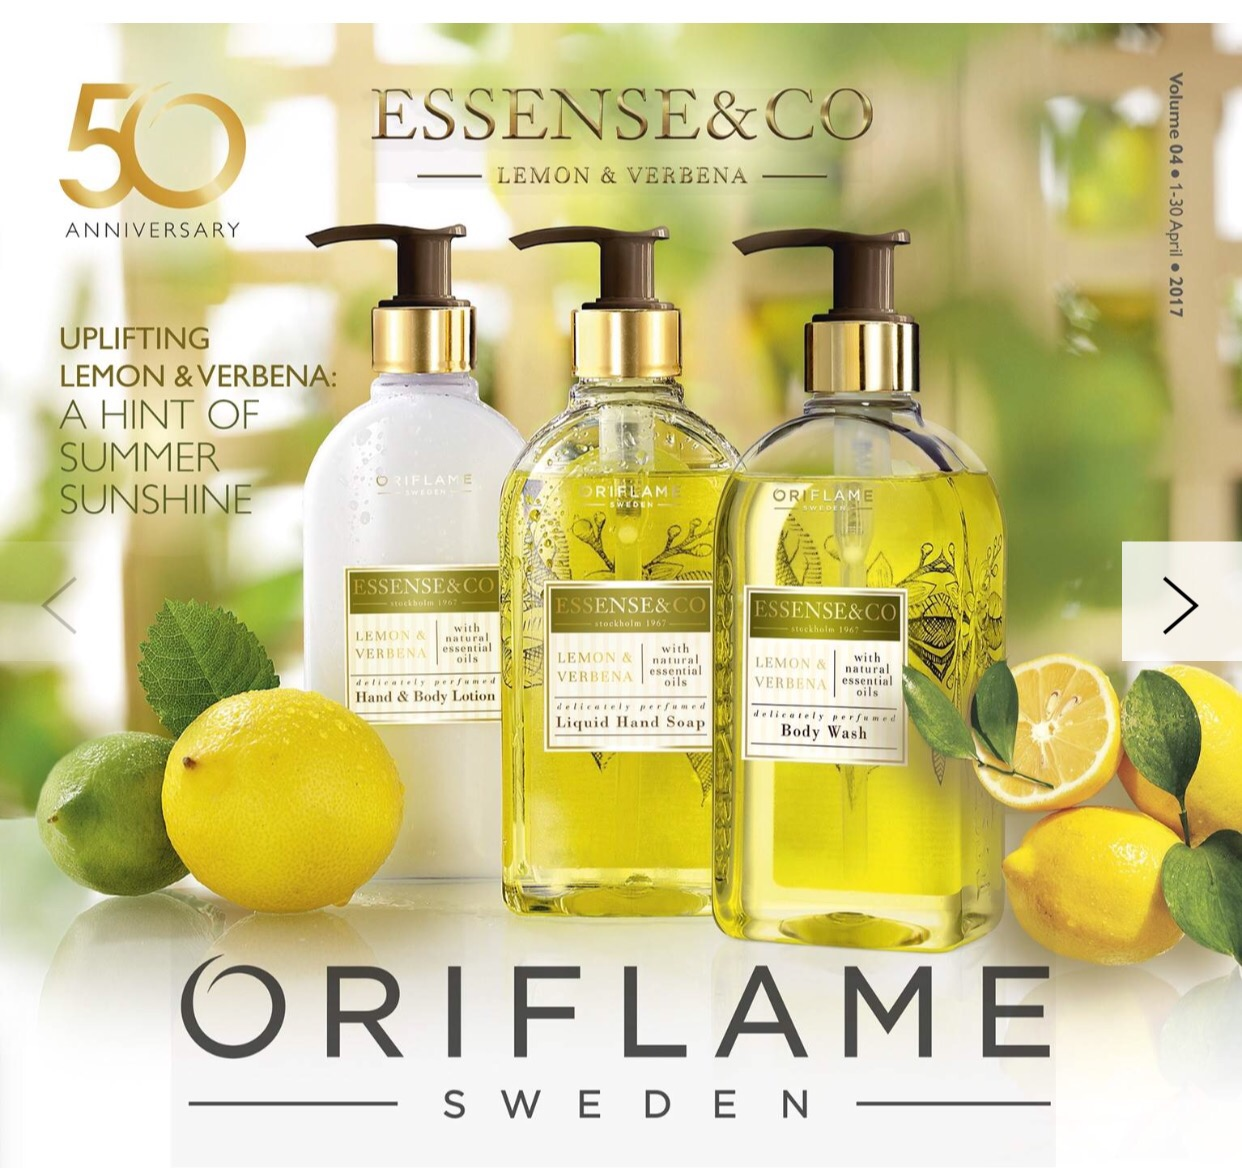 Current month offer oriflame april catalog and offers purvi current month catalog oriflame april 2017 catalog stopboris Gallery